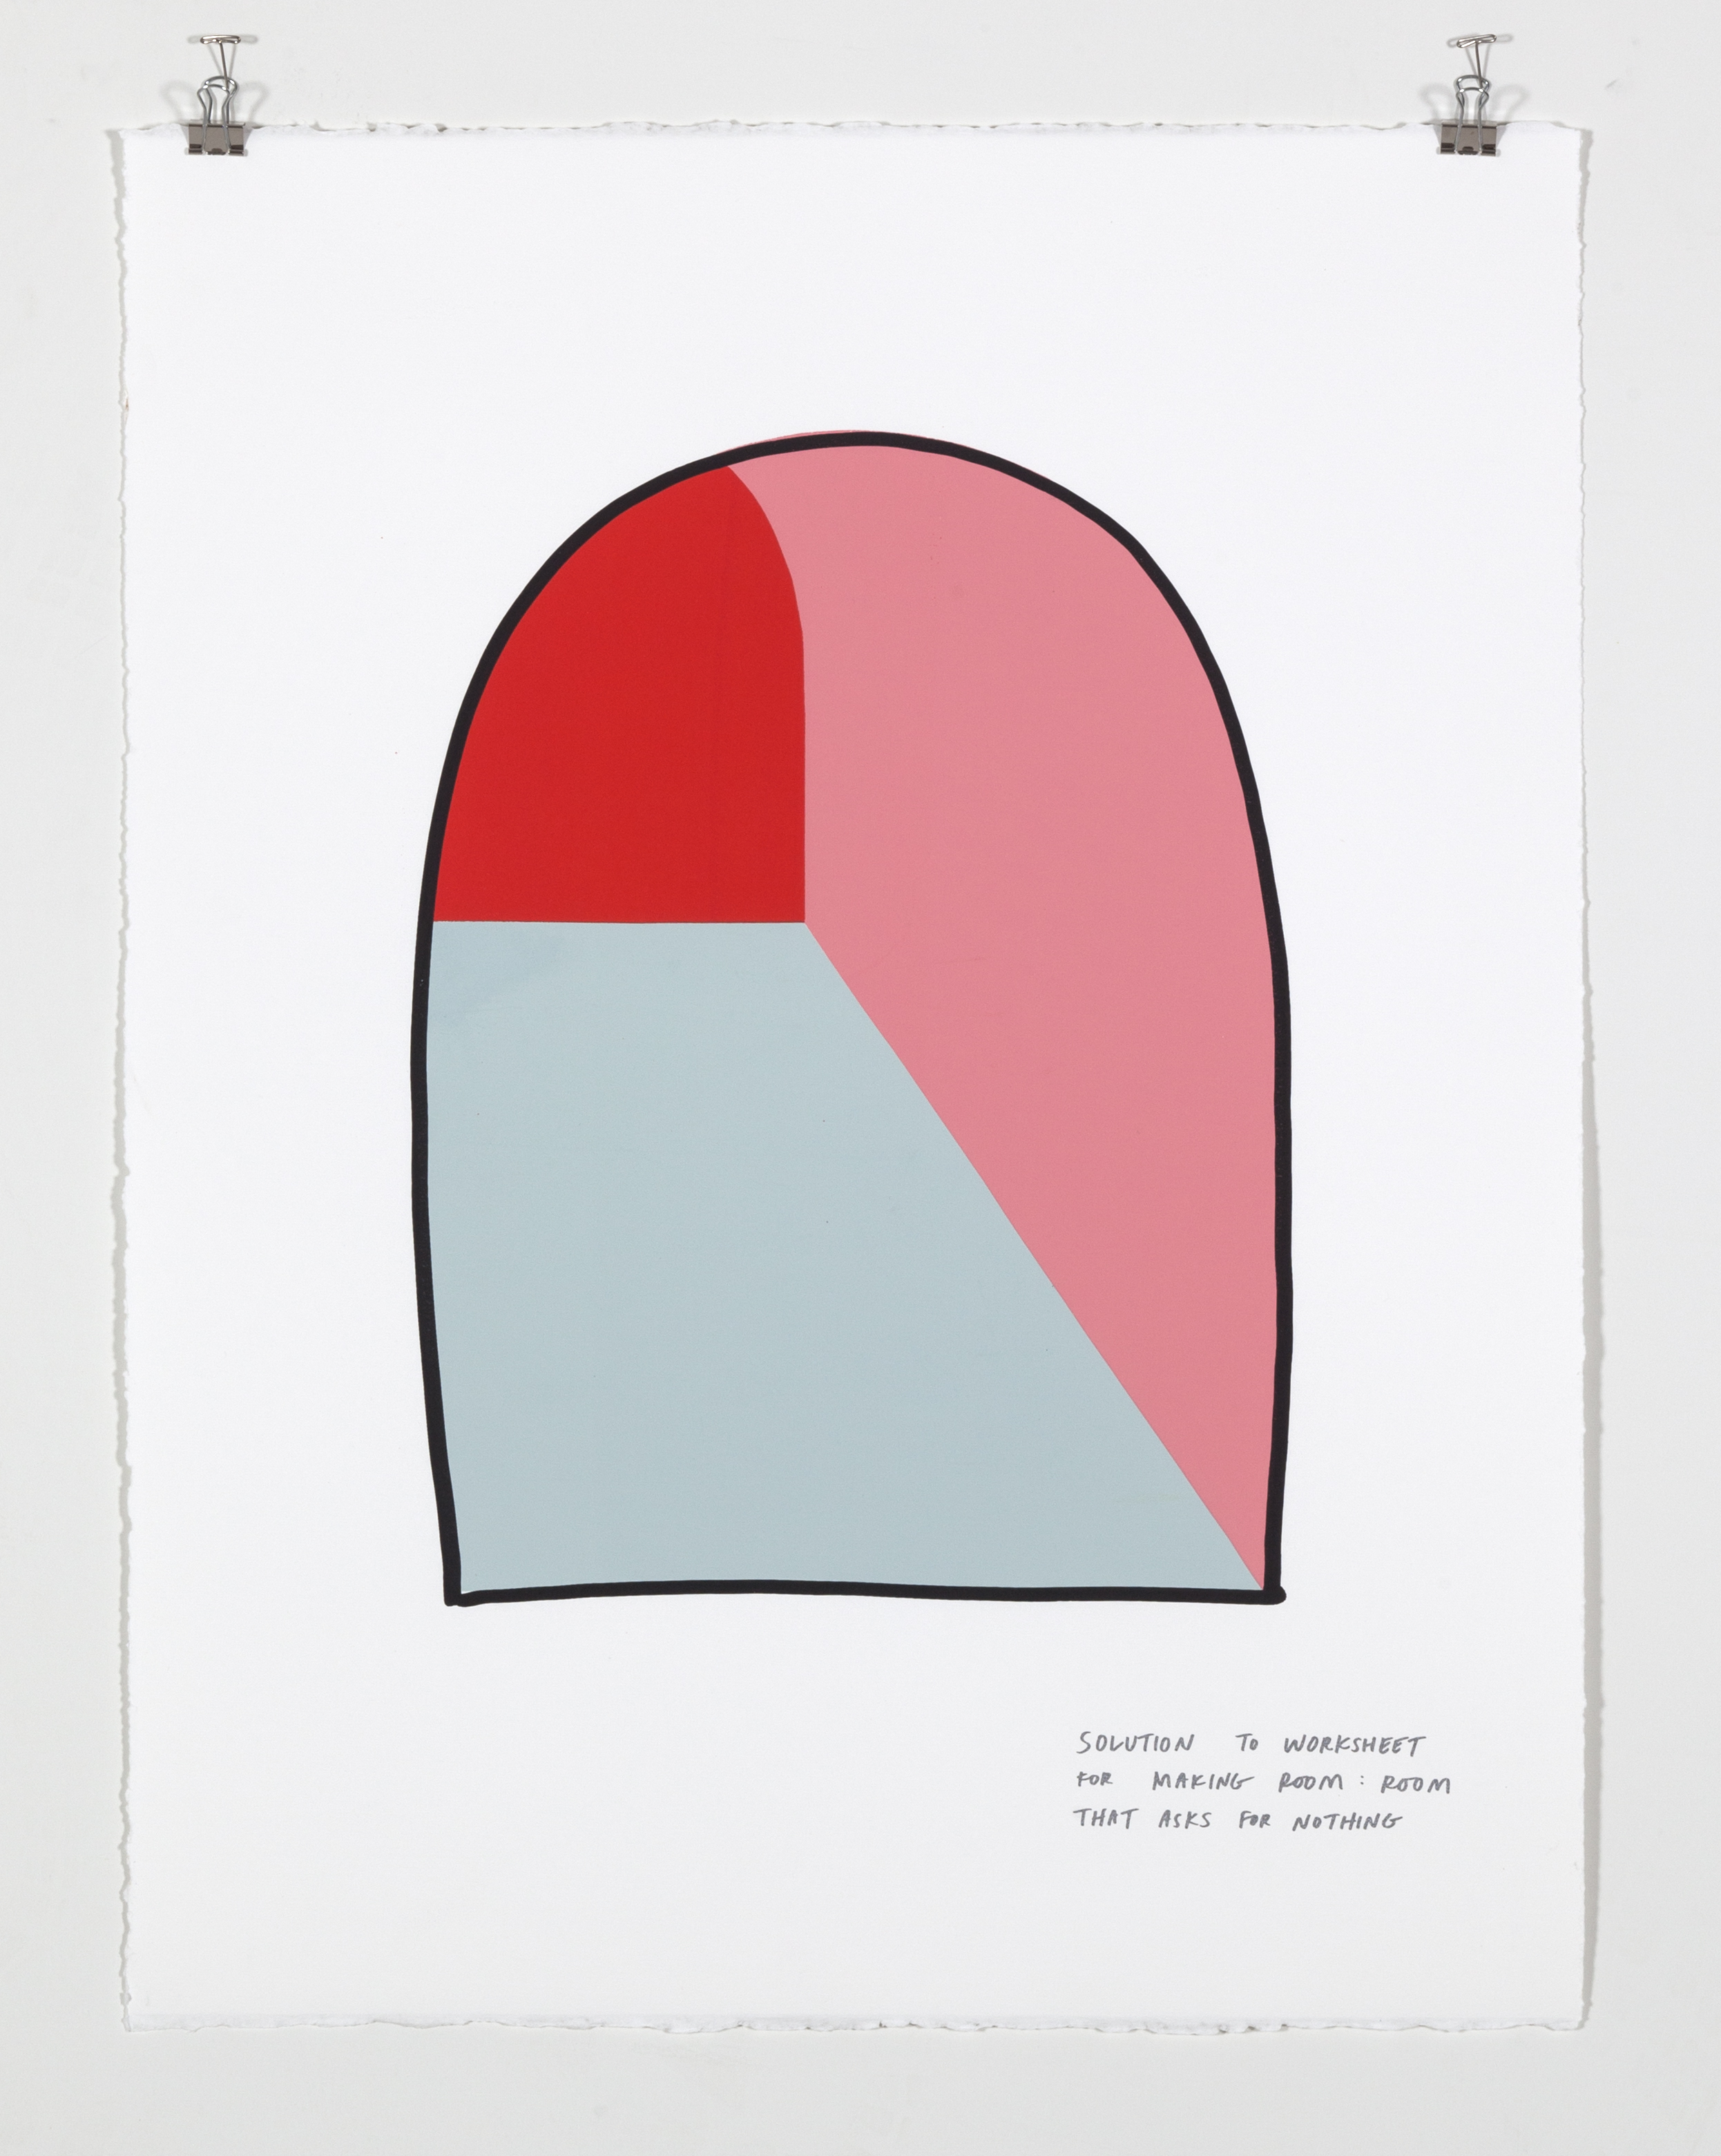 Solution to Worksheet for Making Room: Room That Asks for Nothing,  2018  Five color silkscreen print on paper 19 7/8 x 25 7/8 inches